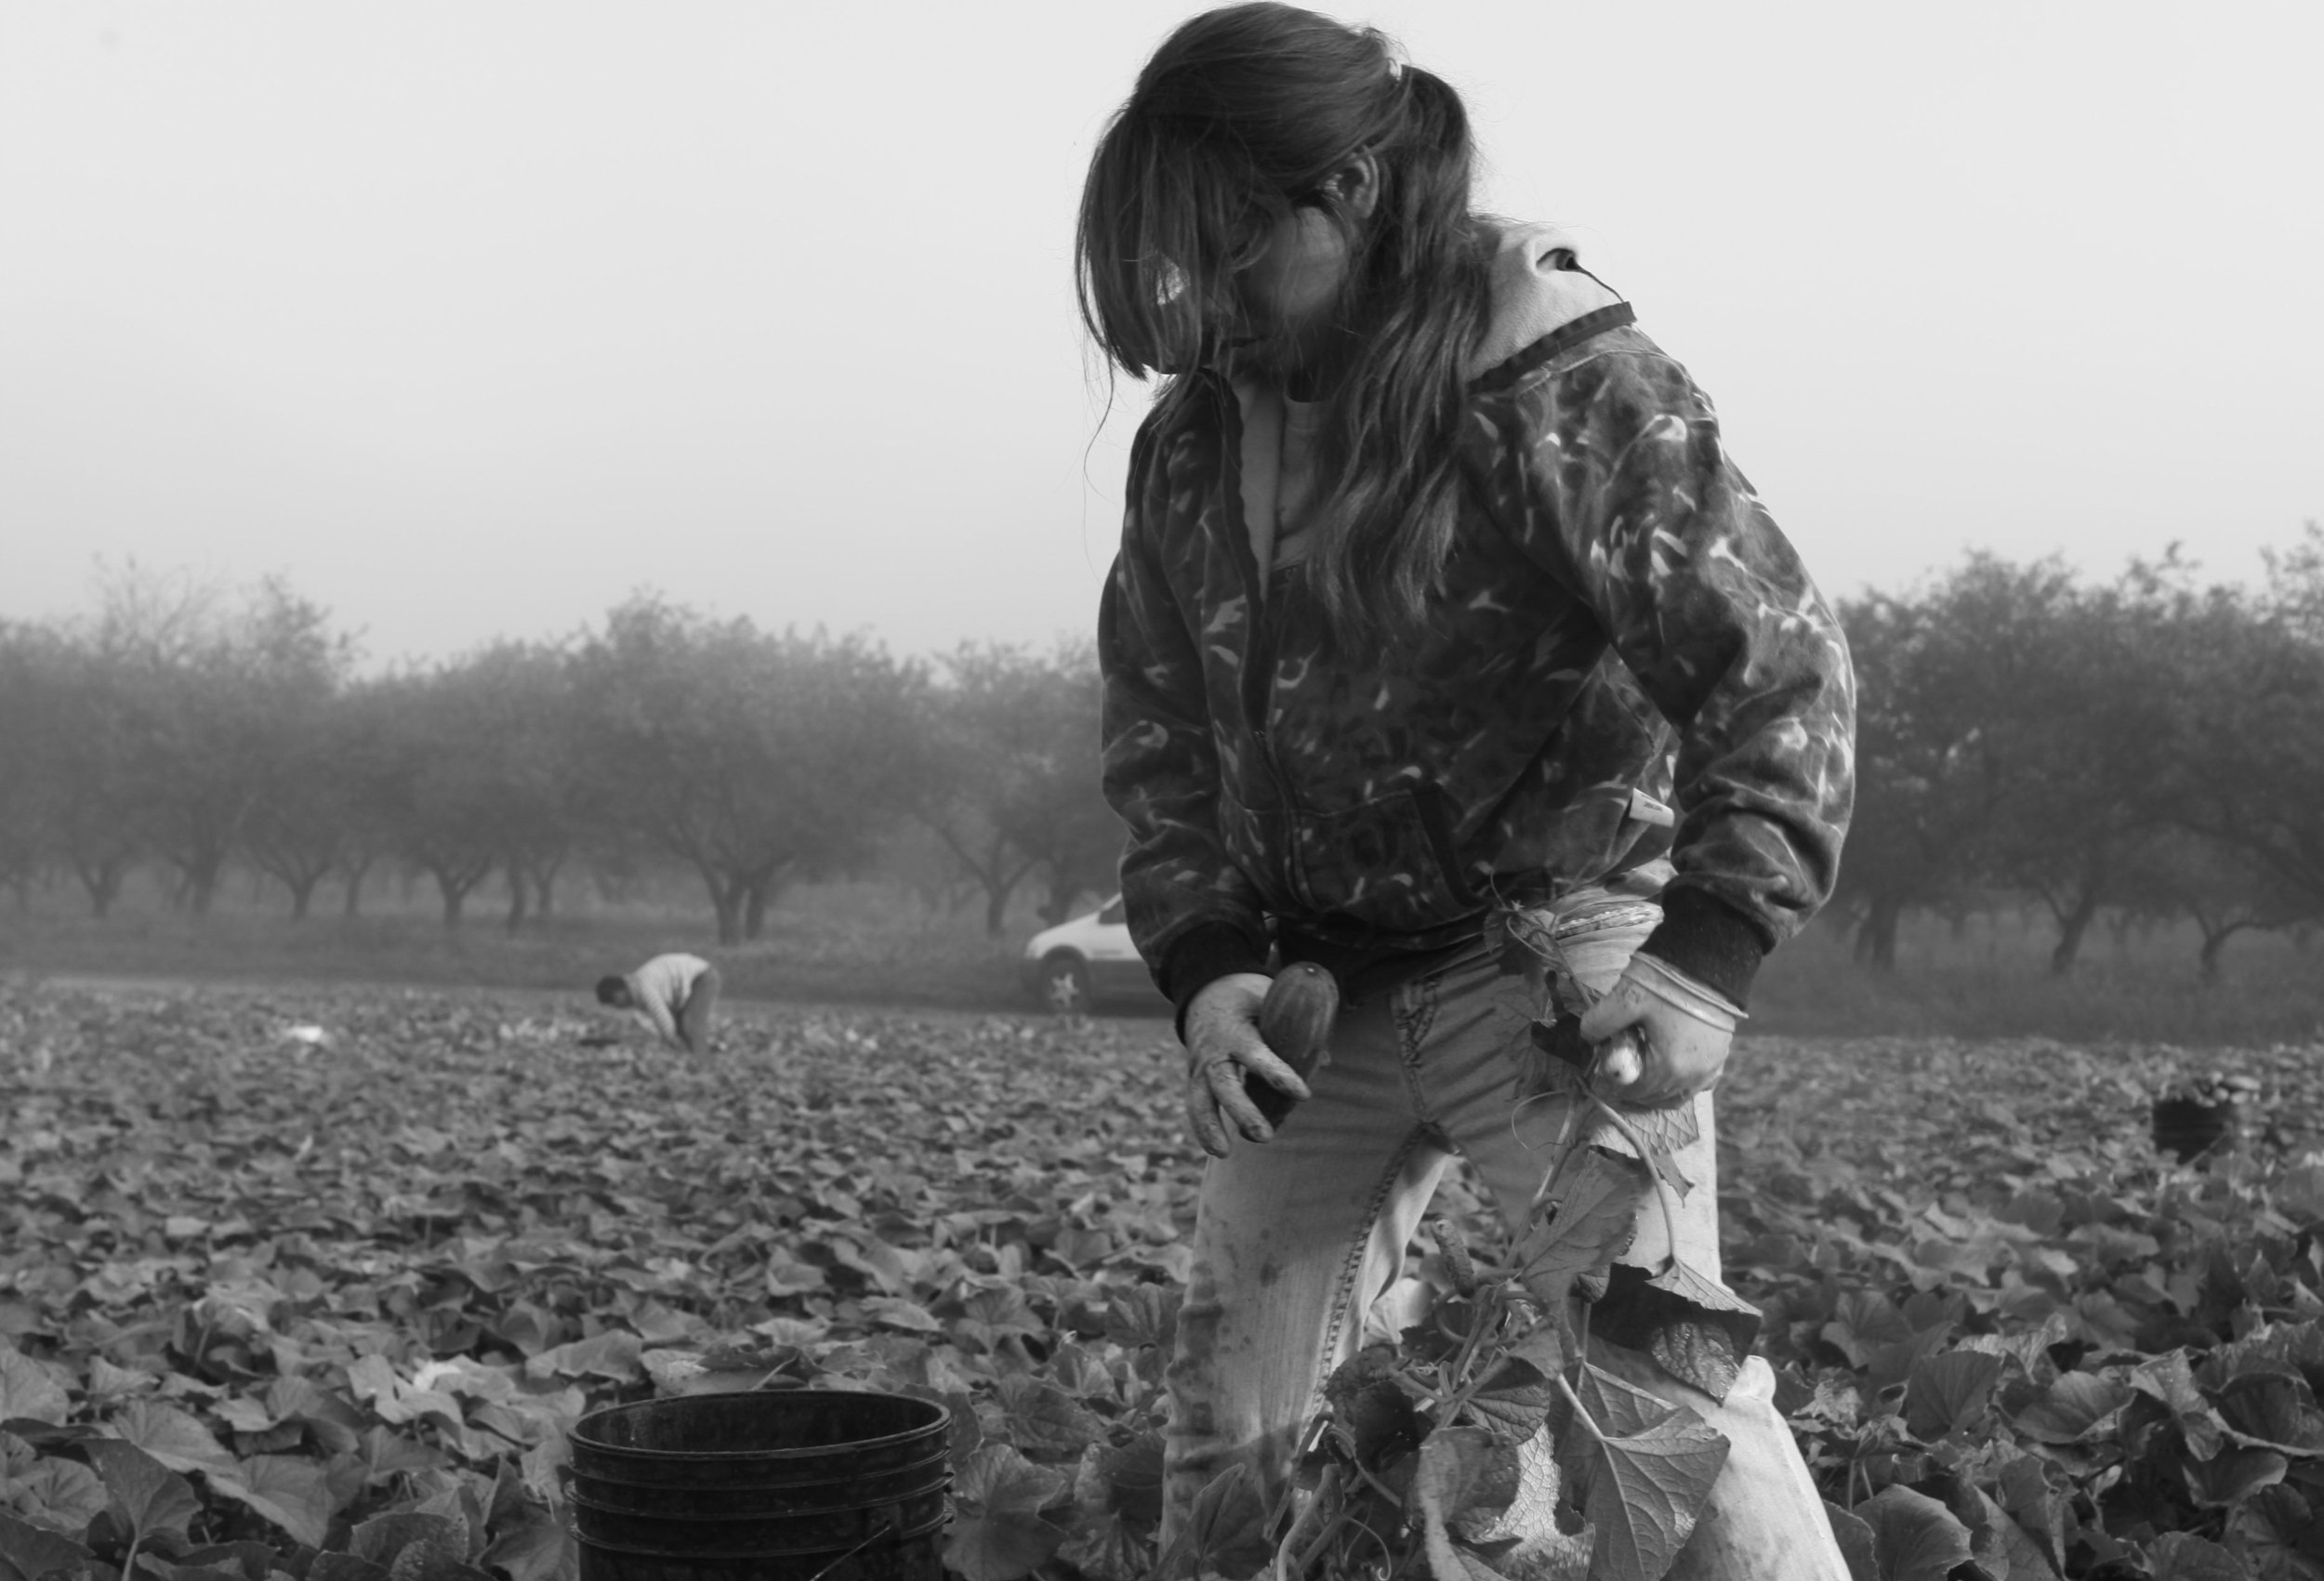 USA: HARVEST WORKERS - These stills were taken during production of The Harvest (La Cosecha),a 2010 documentary directed by our late friend and collaborator, Robin Romano. ©Robin Romano